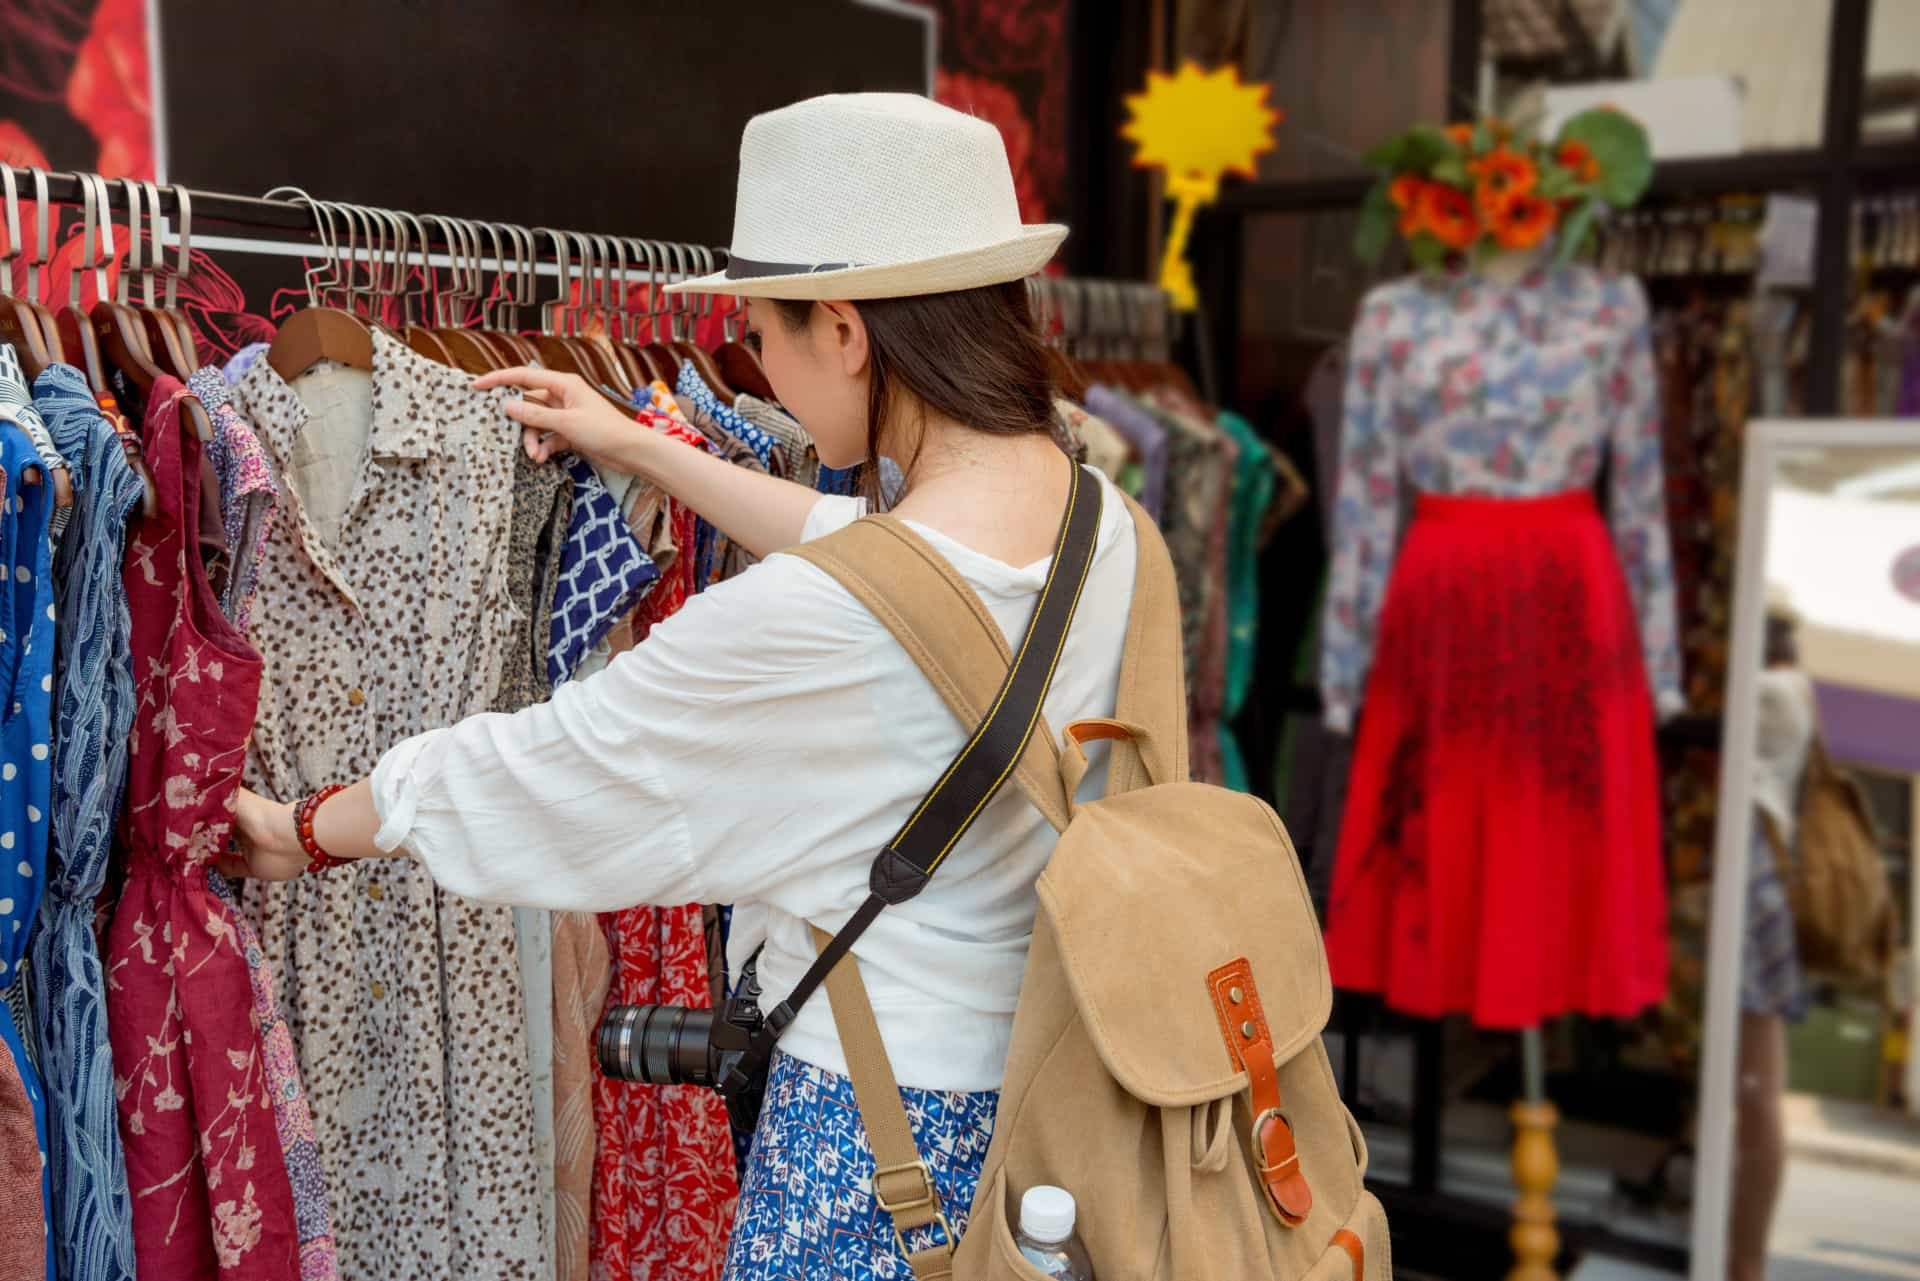 Easy ways to buy more sustainably